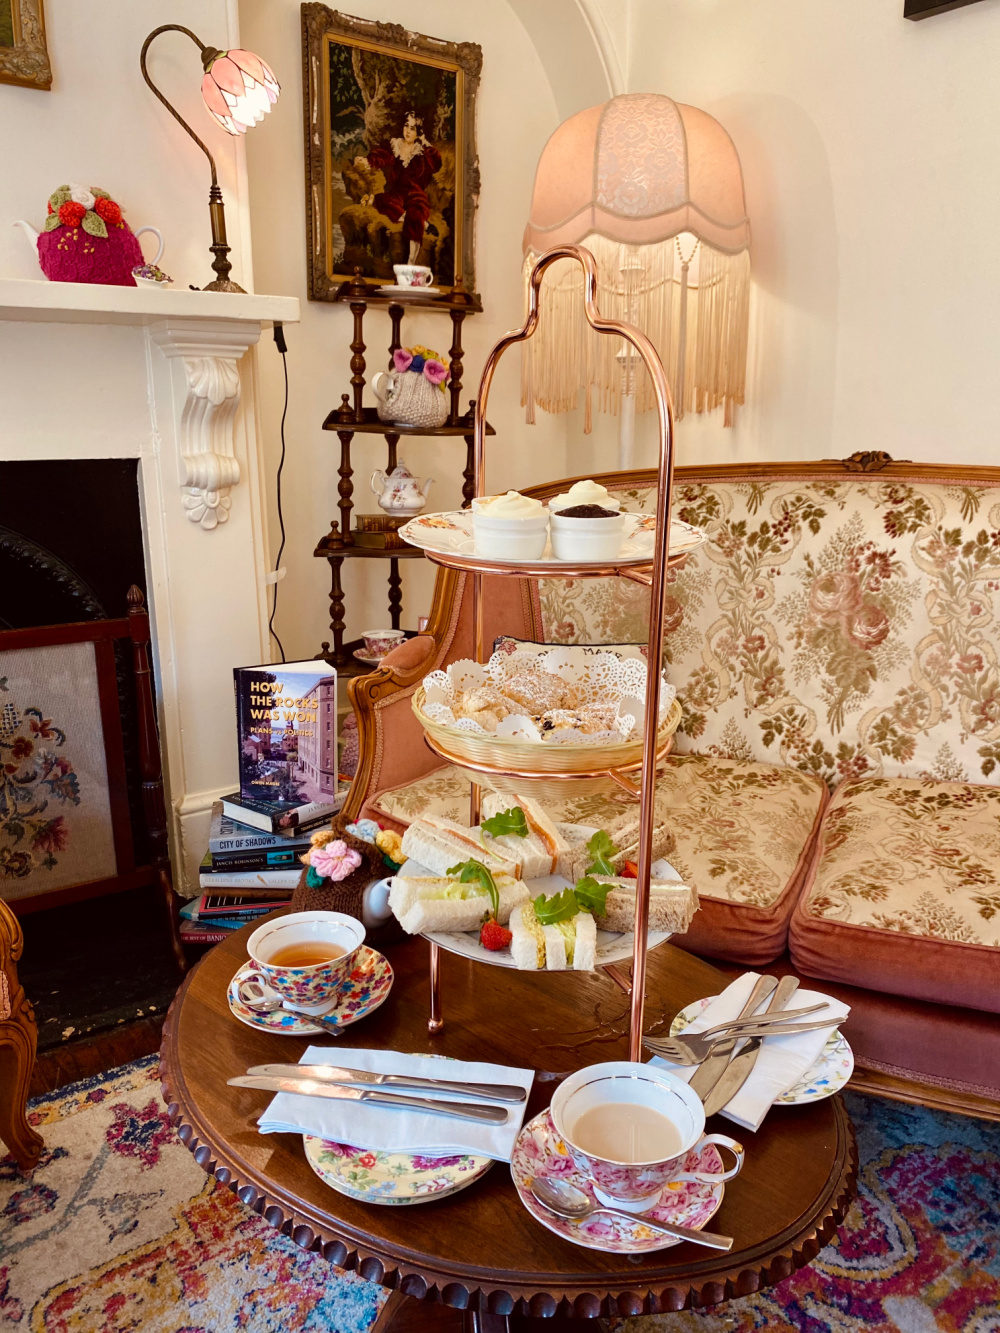 Old fashioned parlour with high tea stand